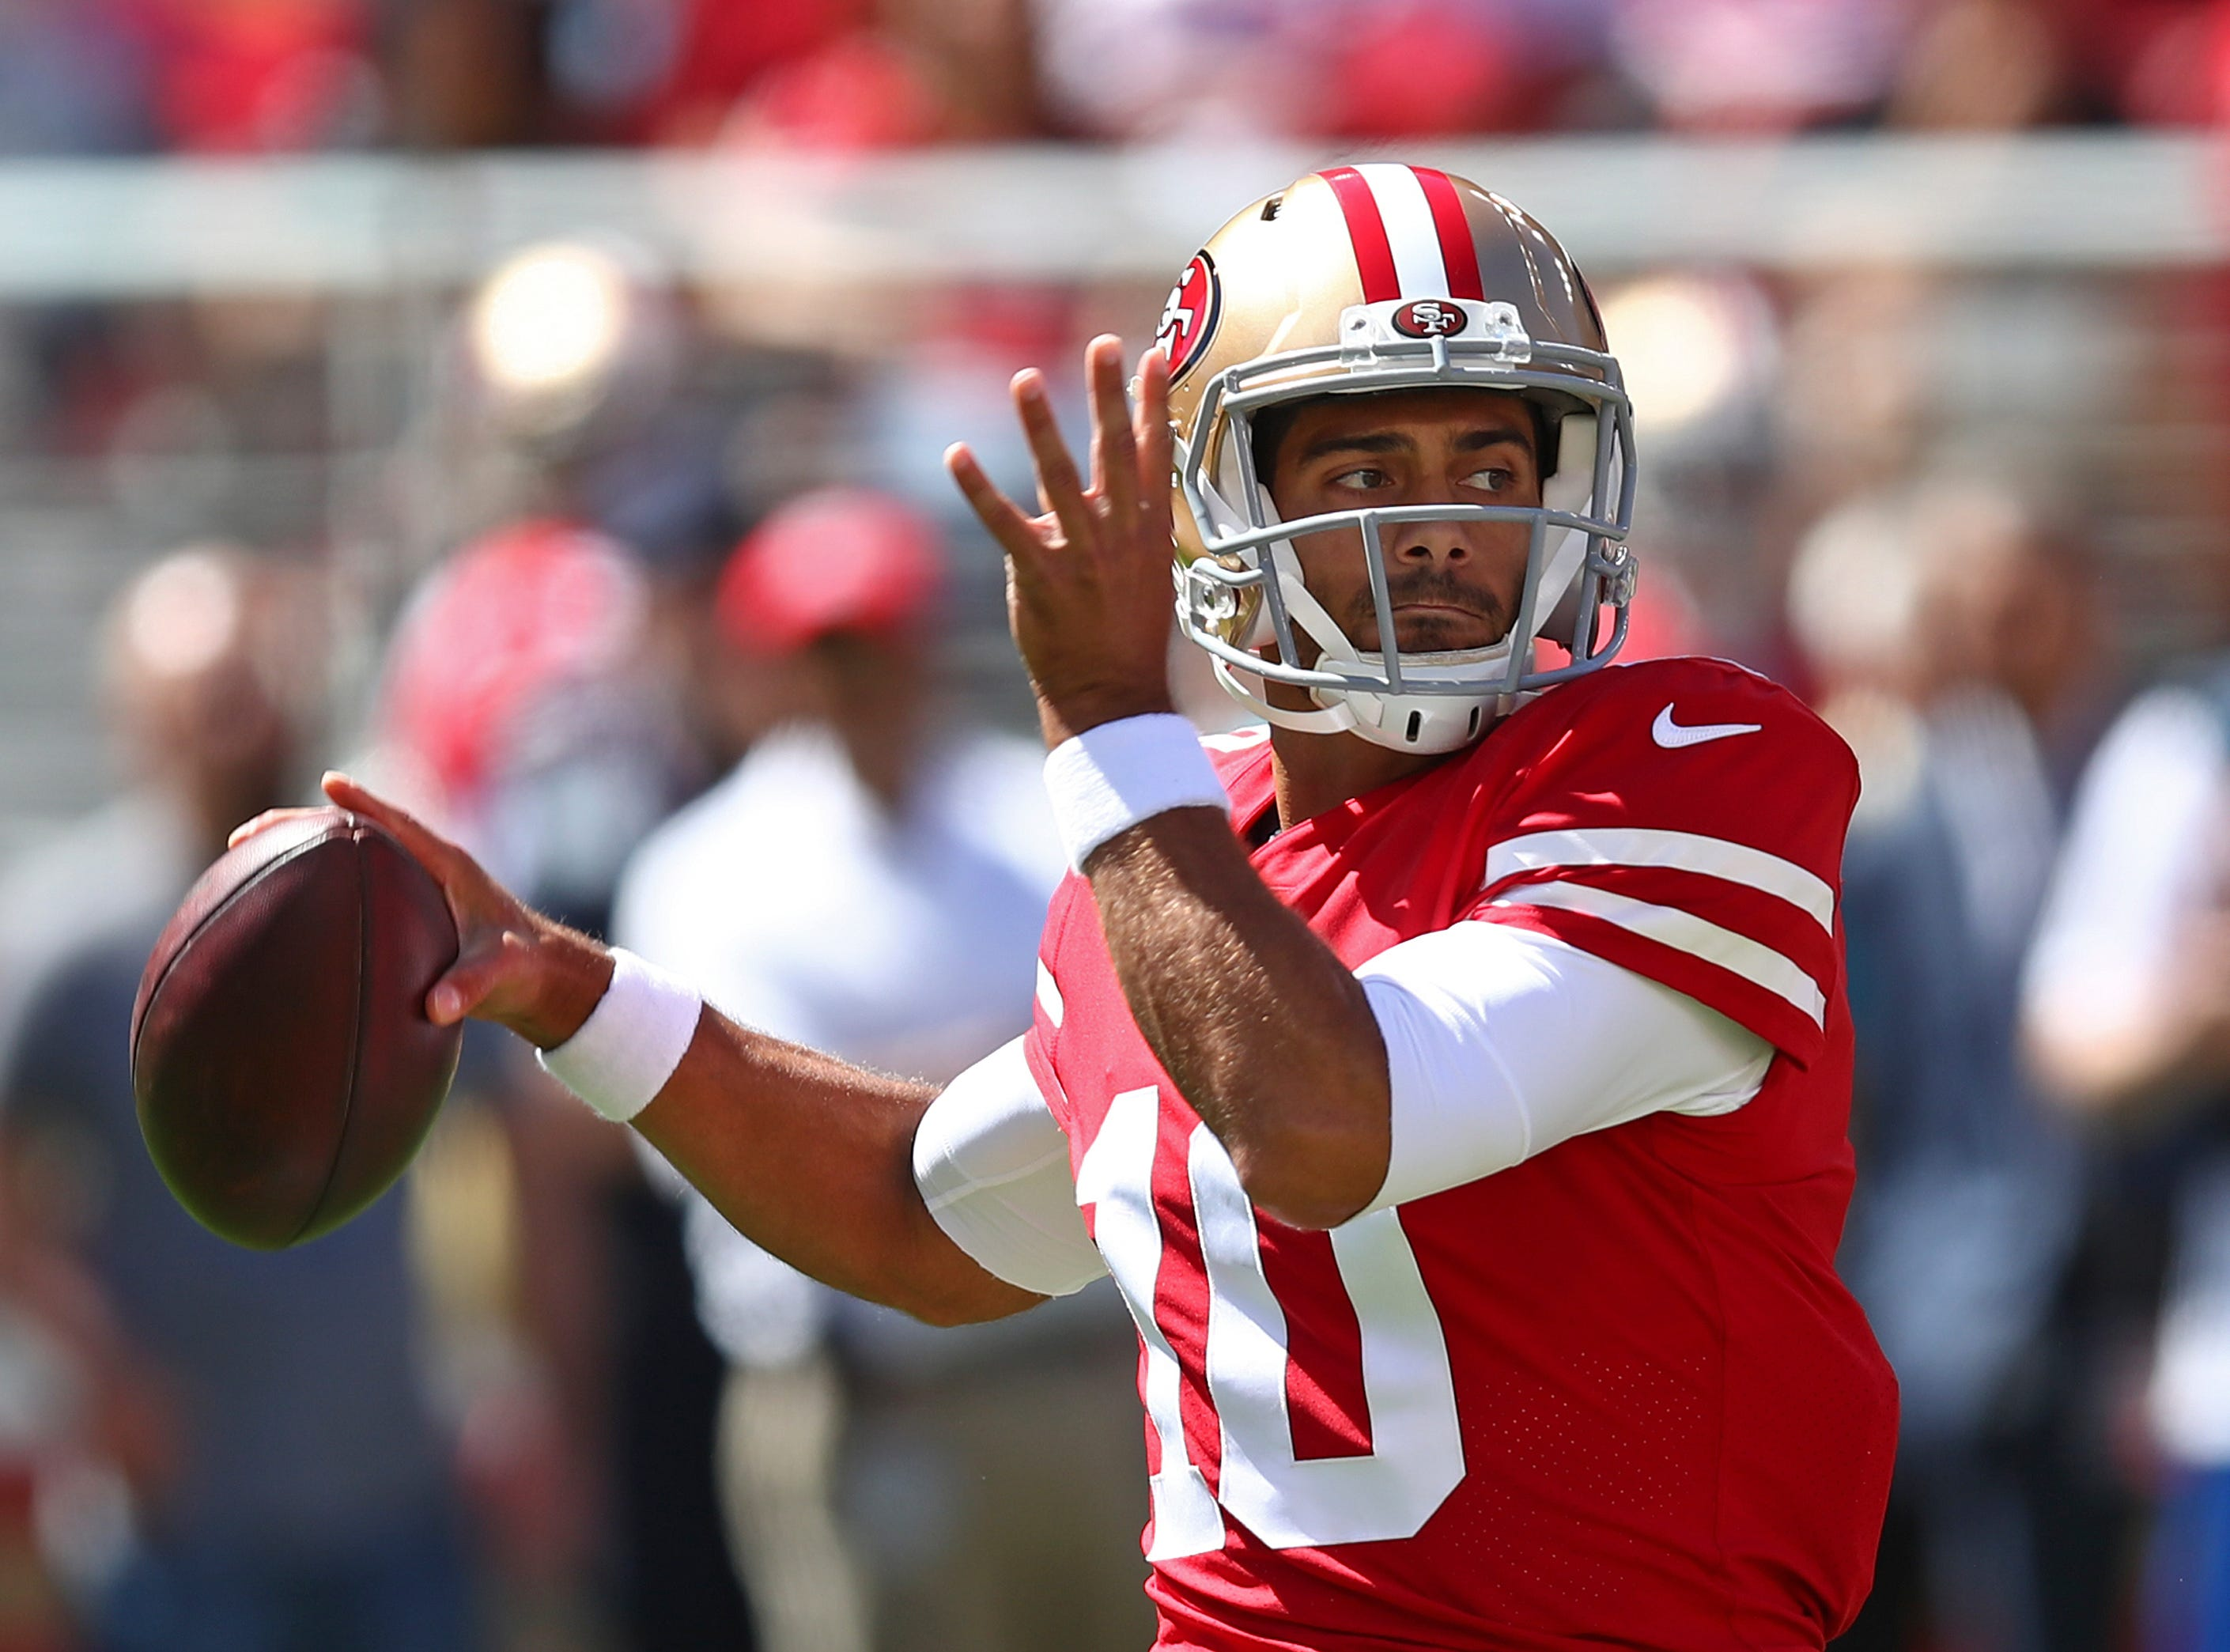 49ers quarterback Jimmy Garoppolo drops back to throw during the first half on Sunday, Sept. 16, 2018, in Santa Clara, Calif.